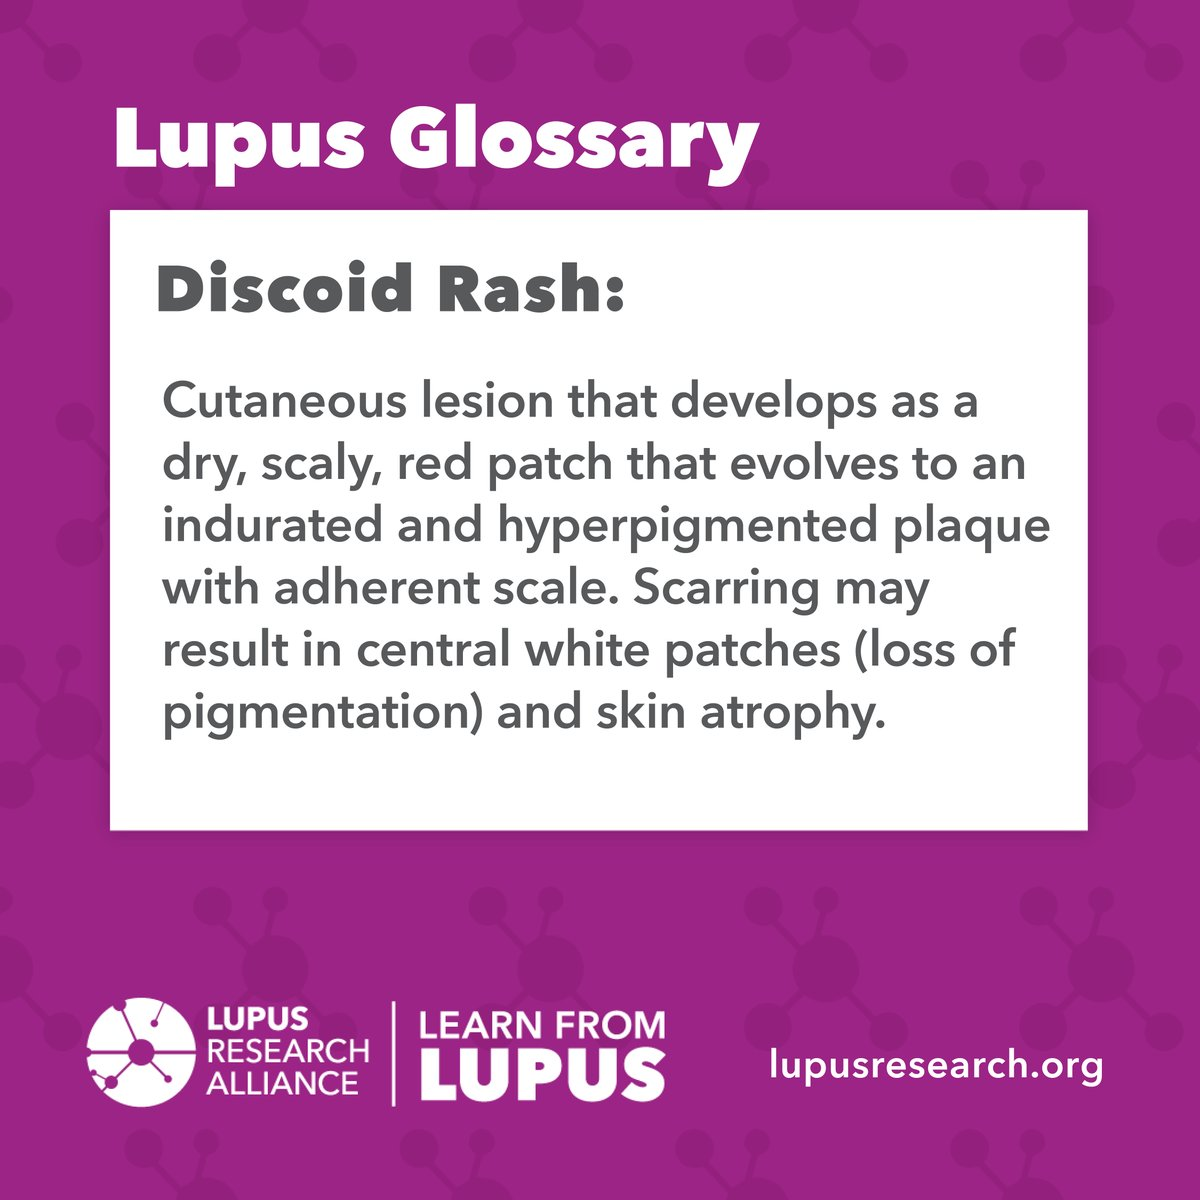 Learn more lupus-related terms in our #LupusGlossary at   #lupus #lupusresearch #SLE #autoimmune #educatelupus #glossaryterms #lupusterms #learnfromlupus